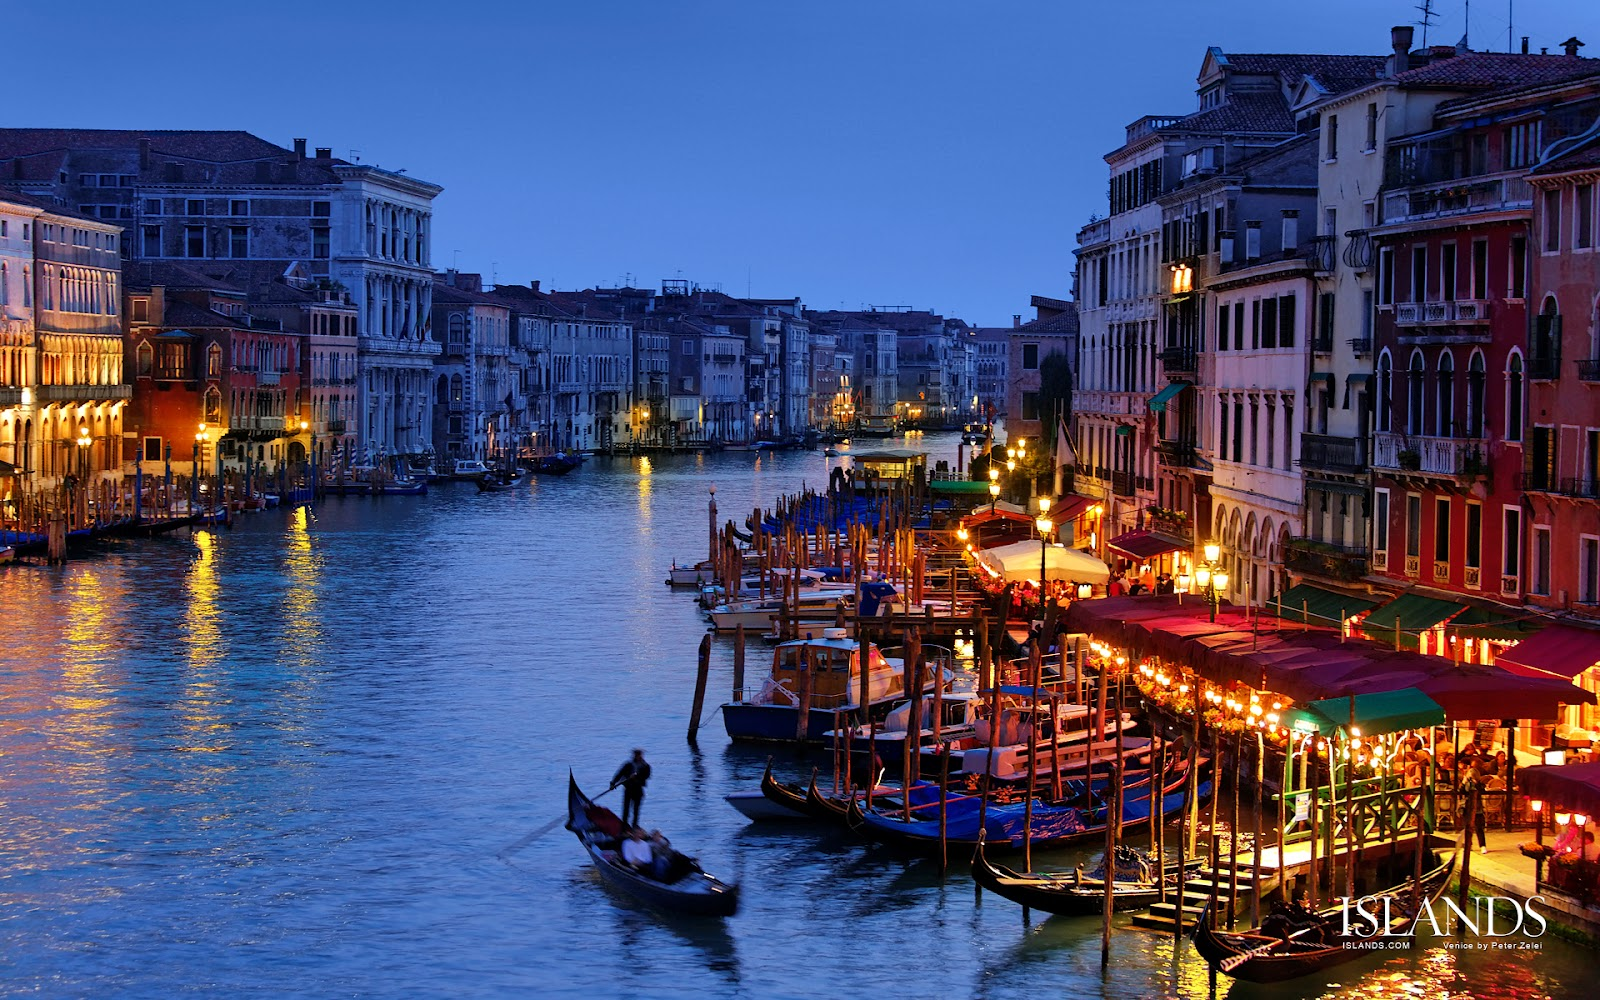 venice italian cities italy desktop background night europe venecia venezia pretty places beauty البندقيه italia place stunning venise مدينه palace